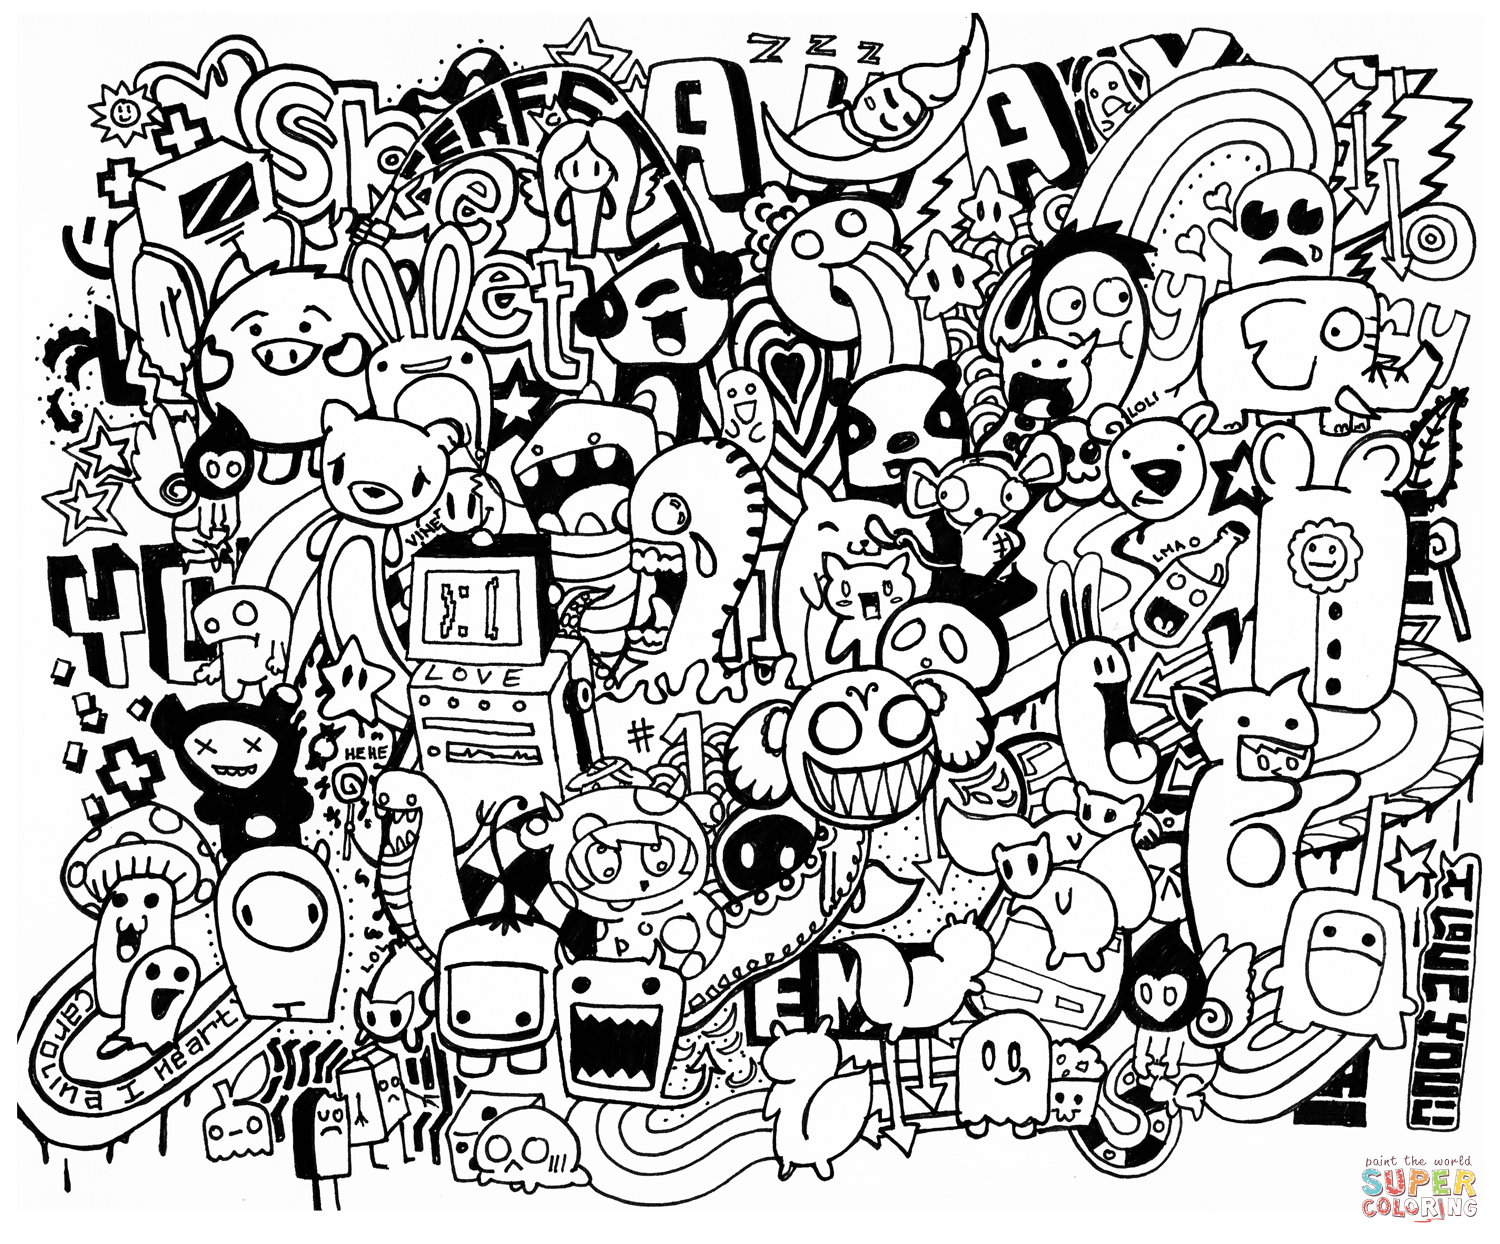 free doodle art to print and color doodle art to color for children doodle art kids doodle free and color print to art